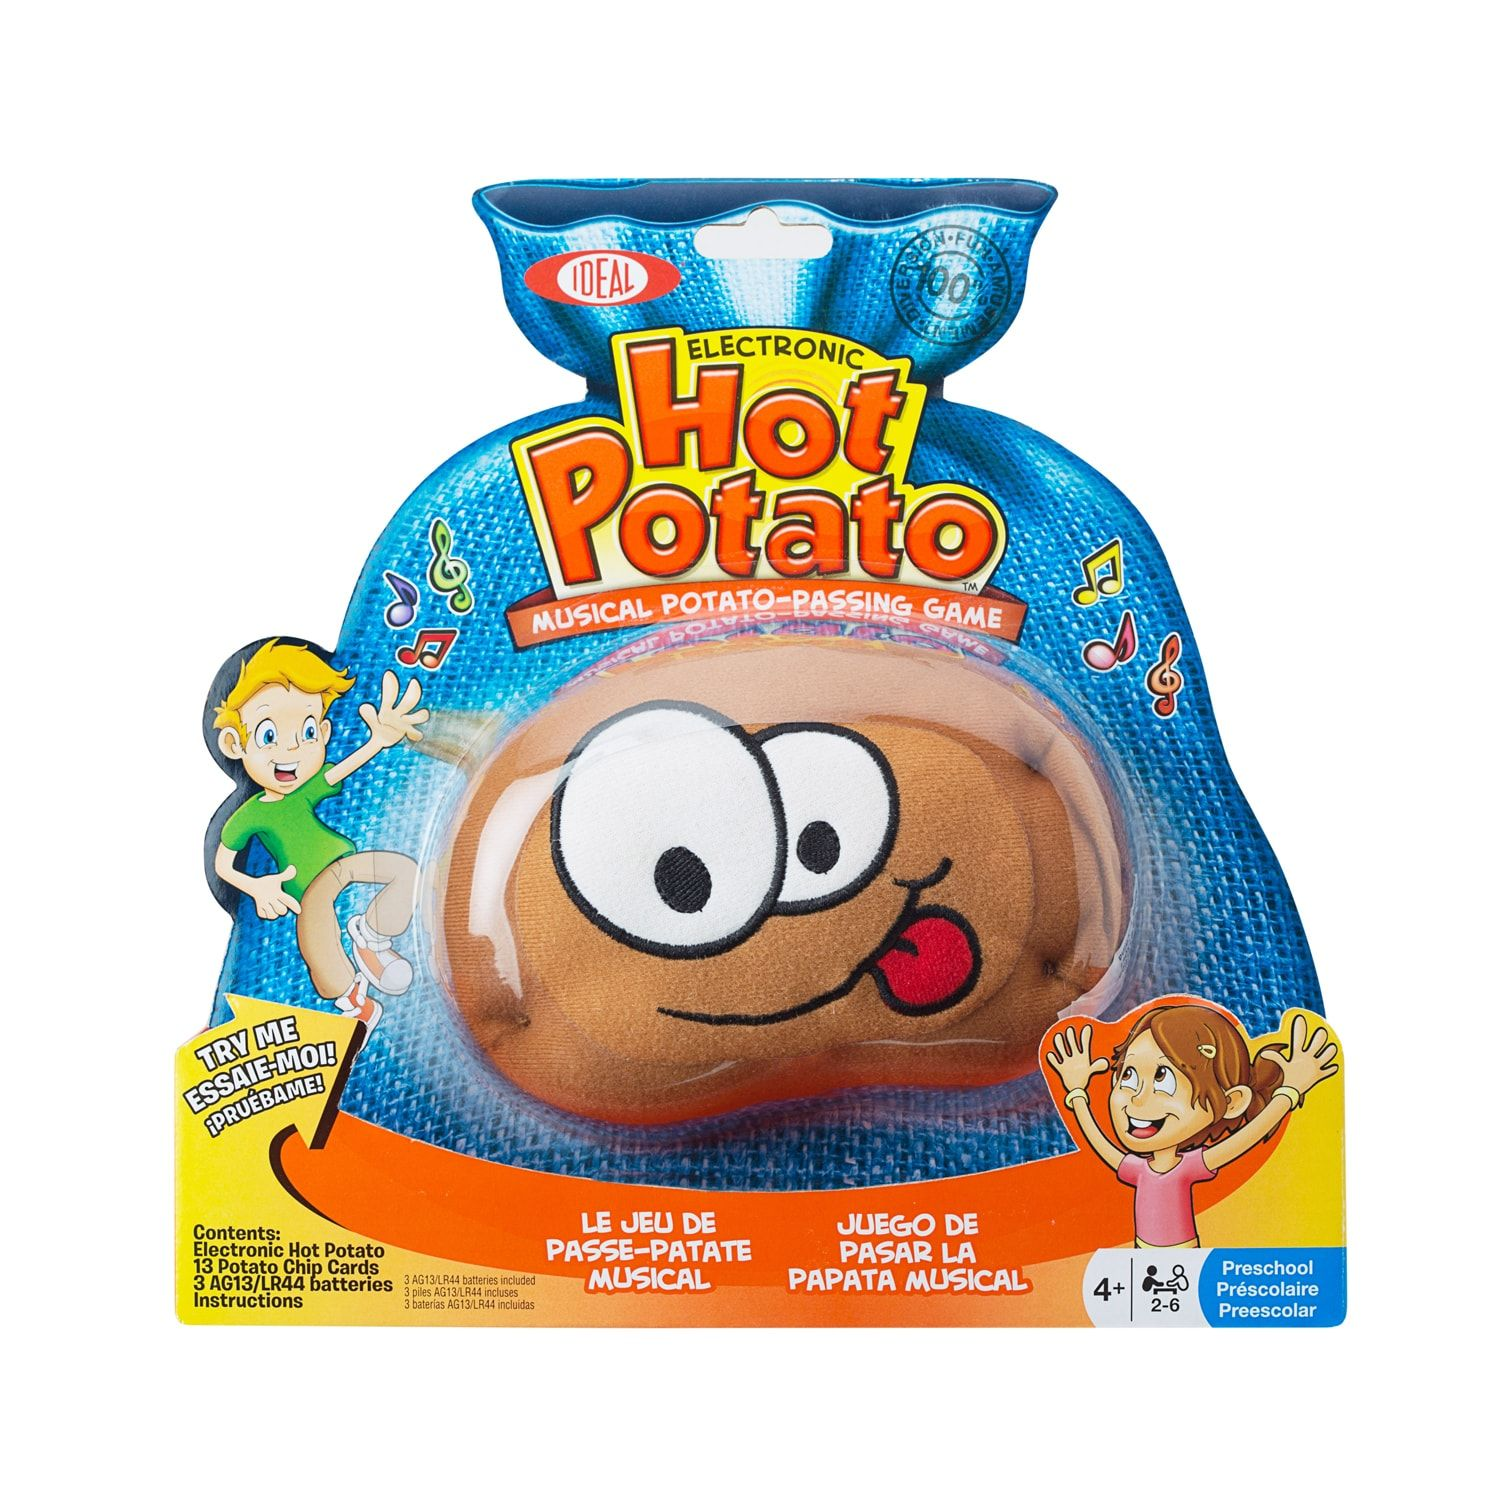 Baby Hot Potato Electronic Musical Passing Game POOF Free Shipping!